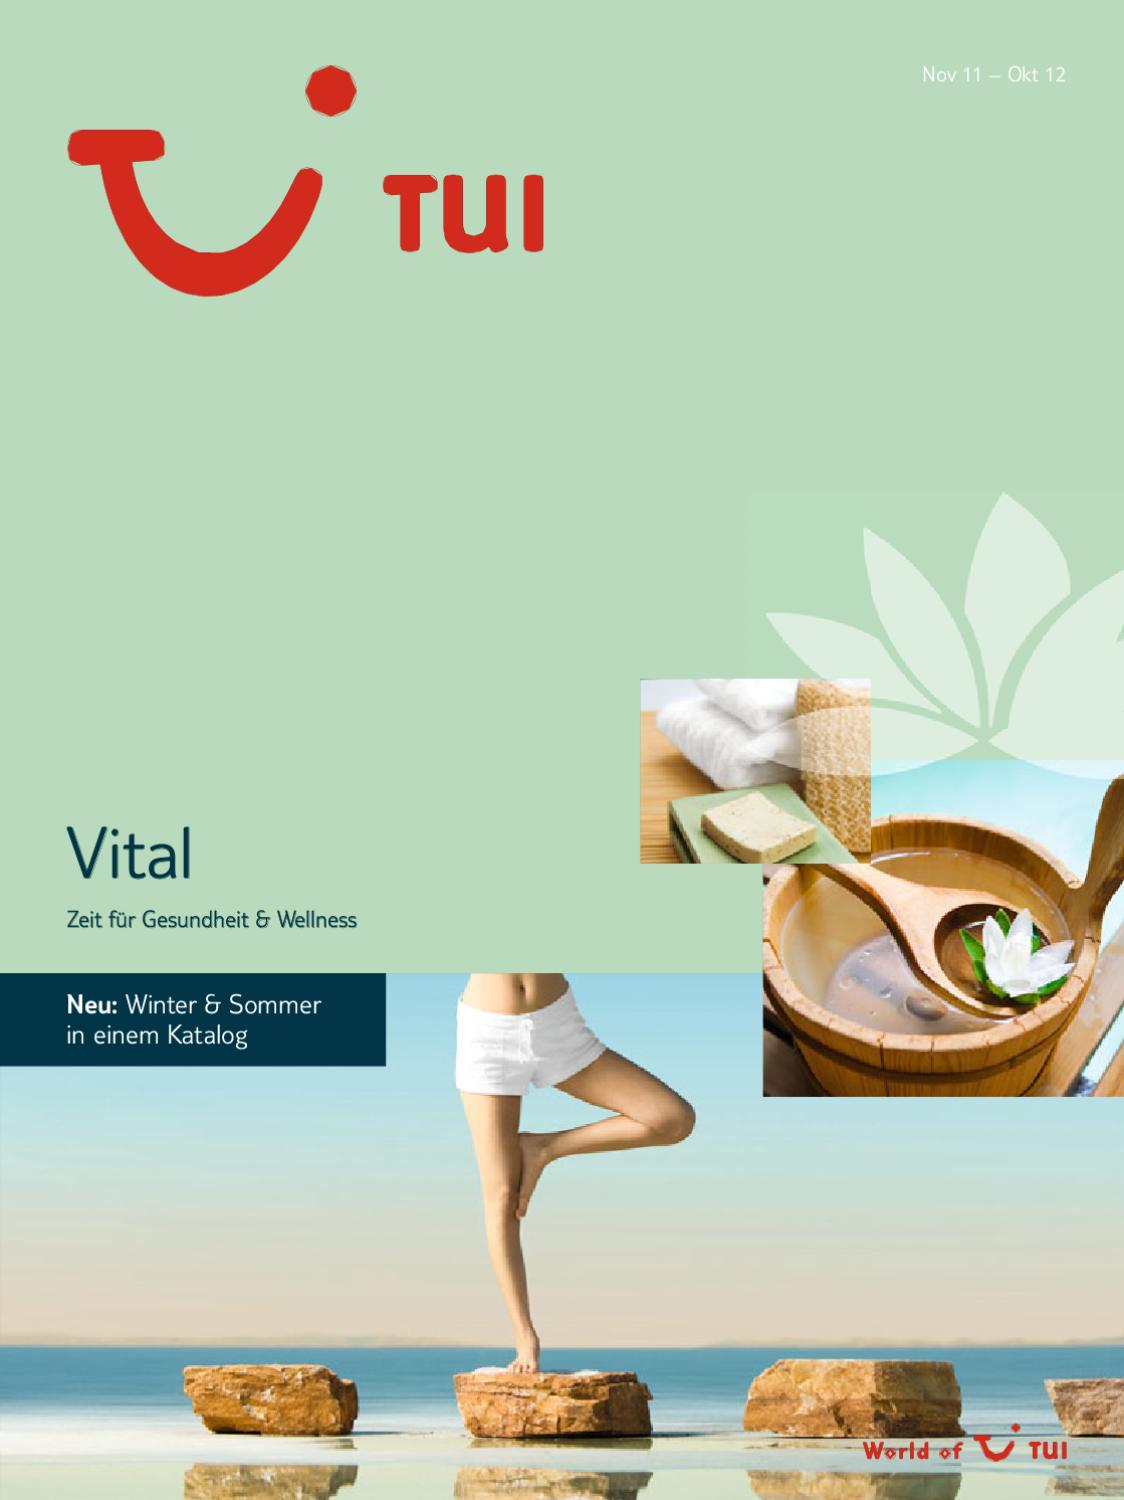 TUI_Vital_1112 by Tim Gloor issuu